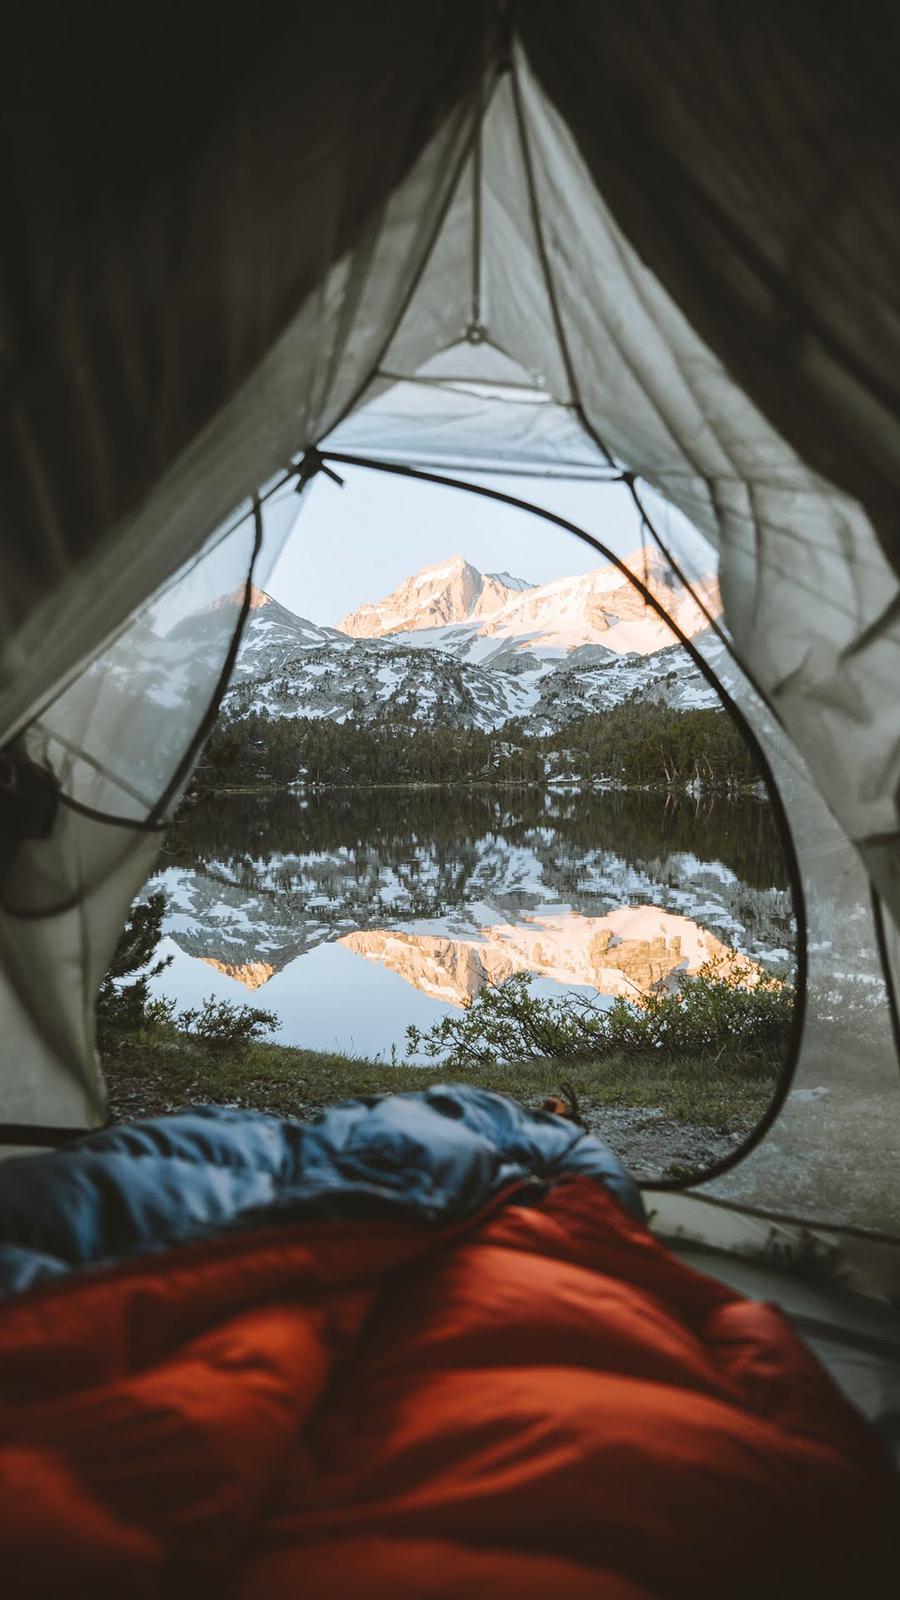 Best Camp Wallpaper – Best Camping Wallpapers Download for Your Device